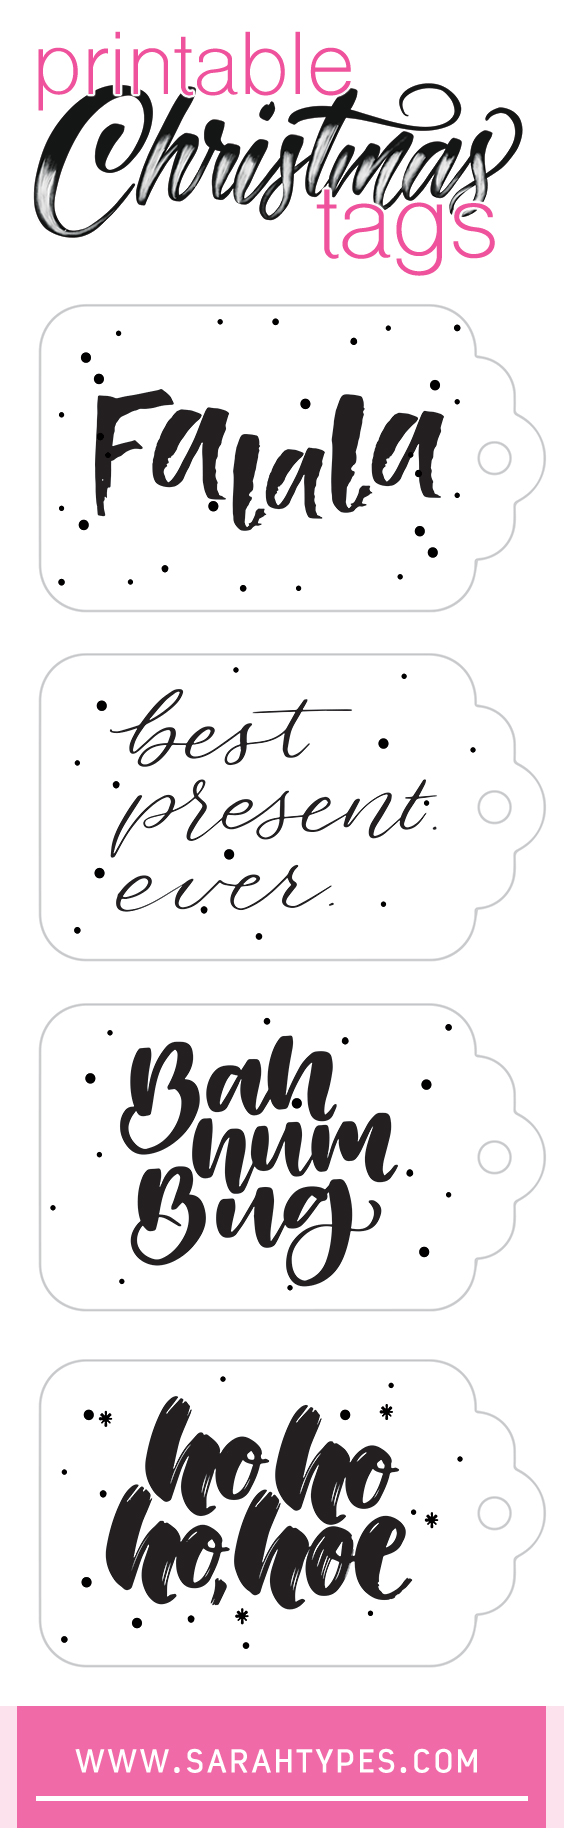 Printable Christmas Present Tags